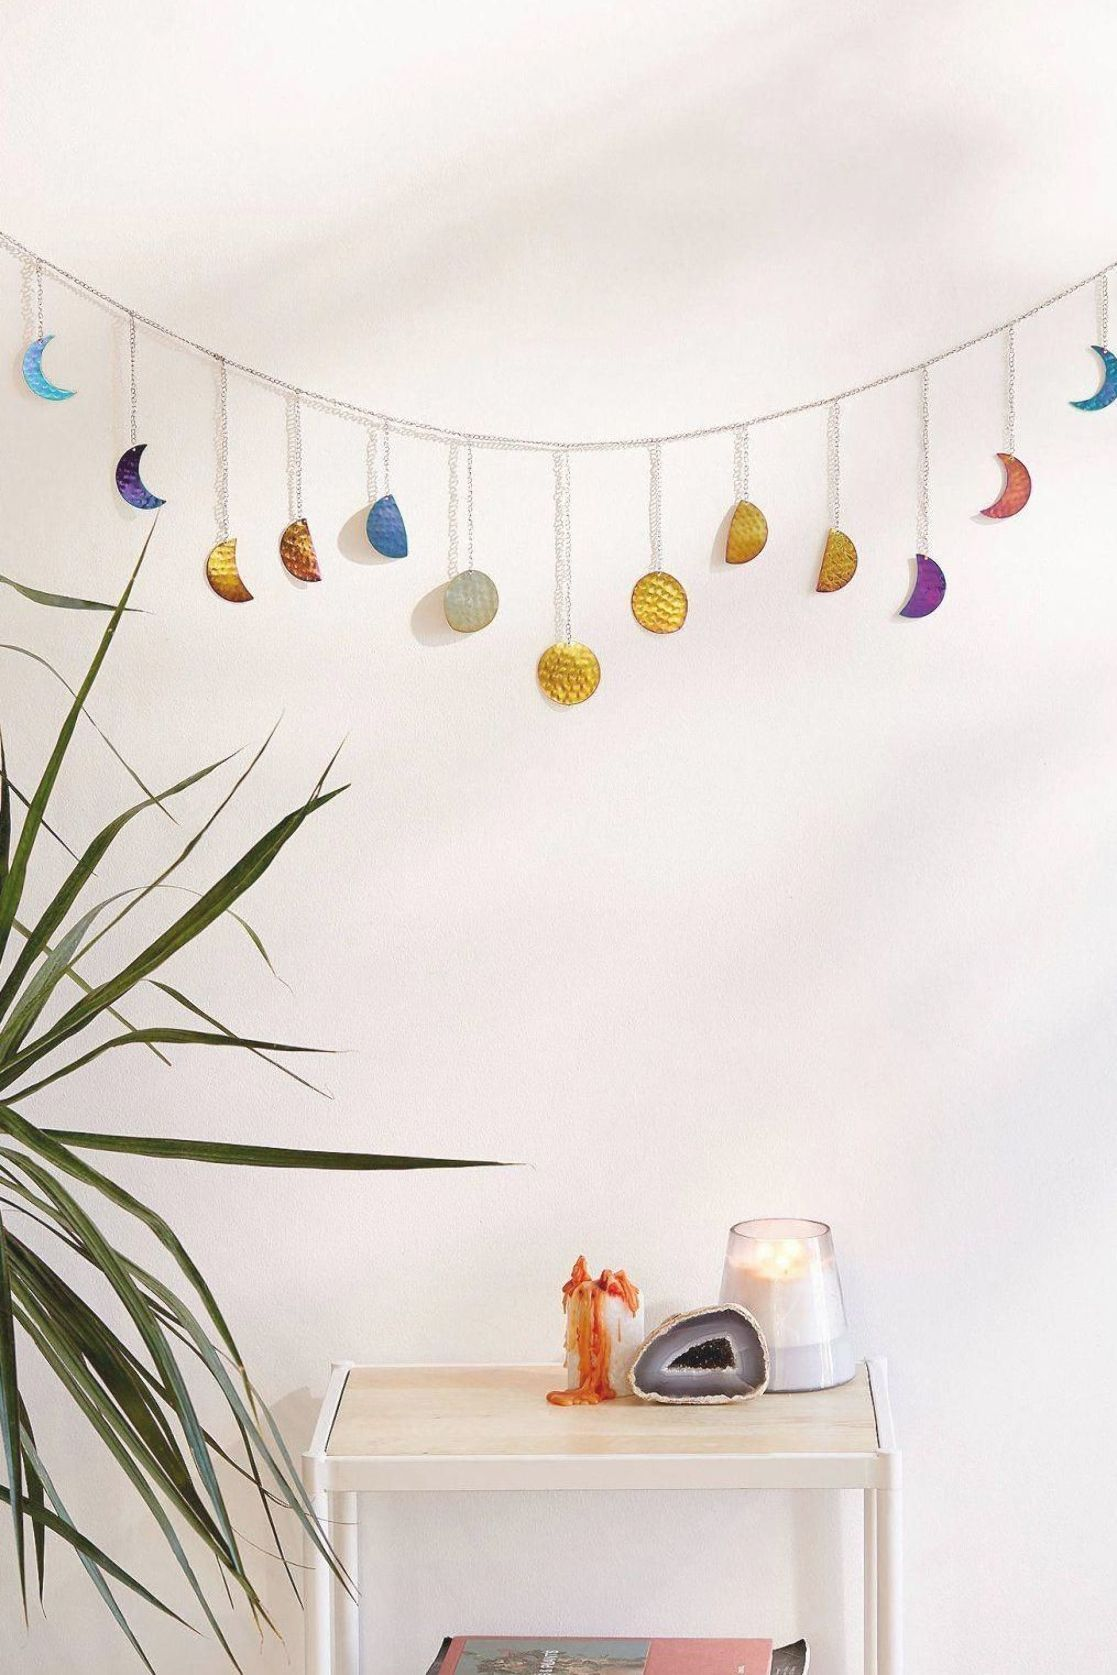 Hammered Metal Moon Cycle Banner   Urban Outfitters #roomdecorideas